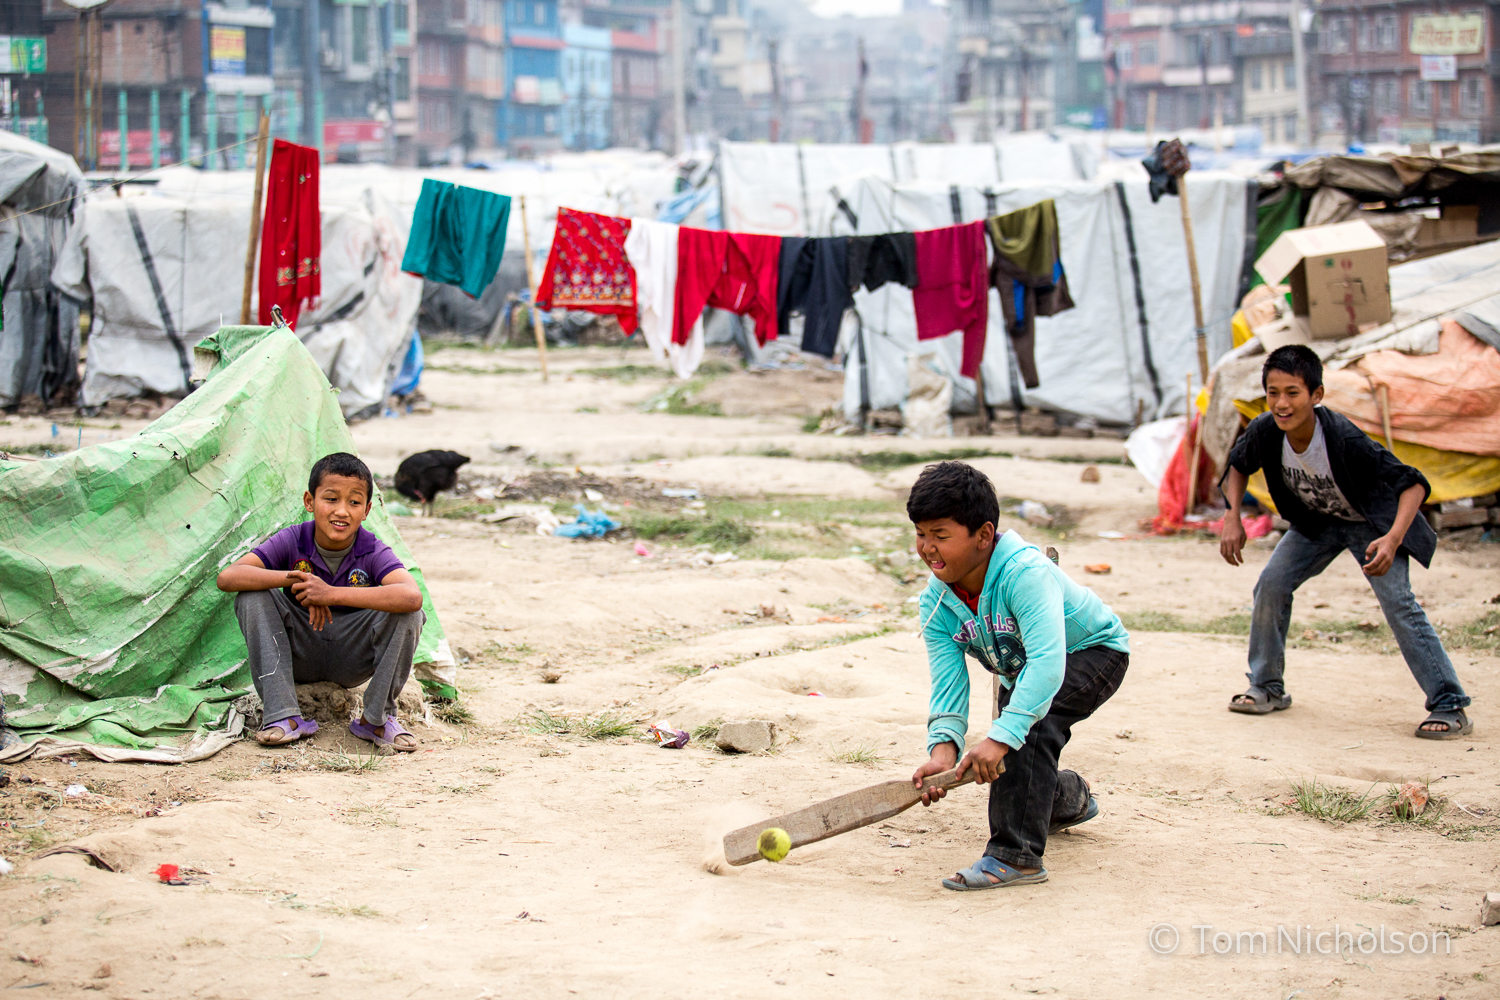 Children play cricket in the Internally Displaced Person (IDP) camp in Chuchepati, Kathmandu City, Nepal on 27 March 2016. The camp houses people in temporary accomodation due to the April 2015 earthquake.